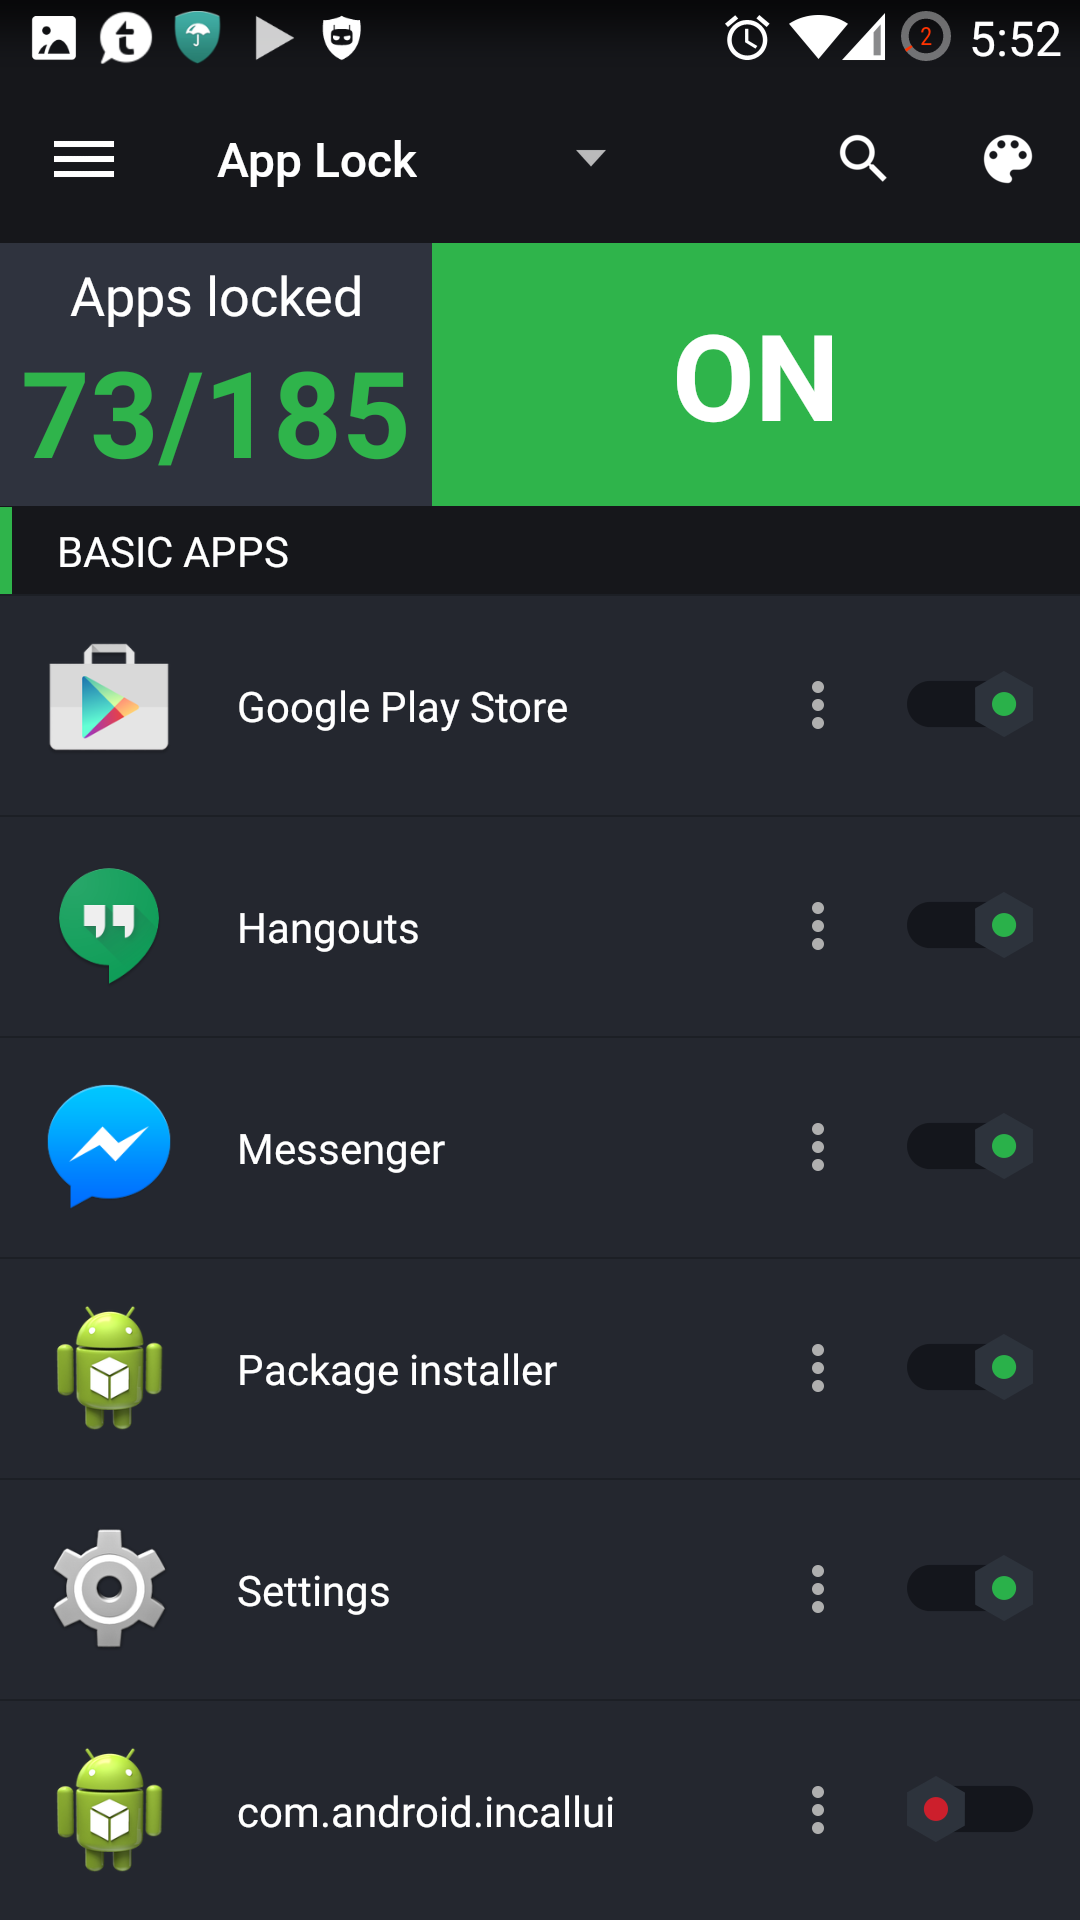 Top 25 Android Apps - By